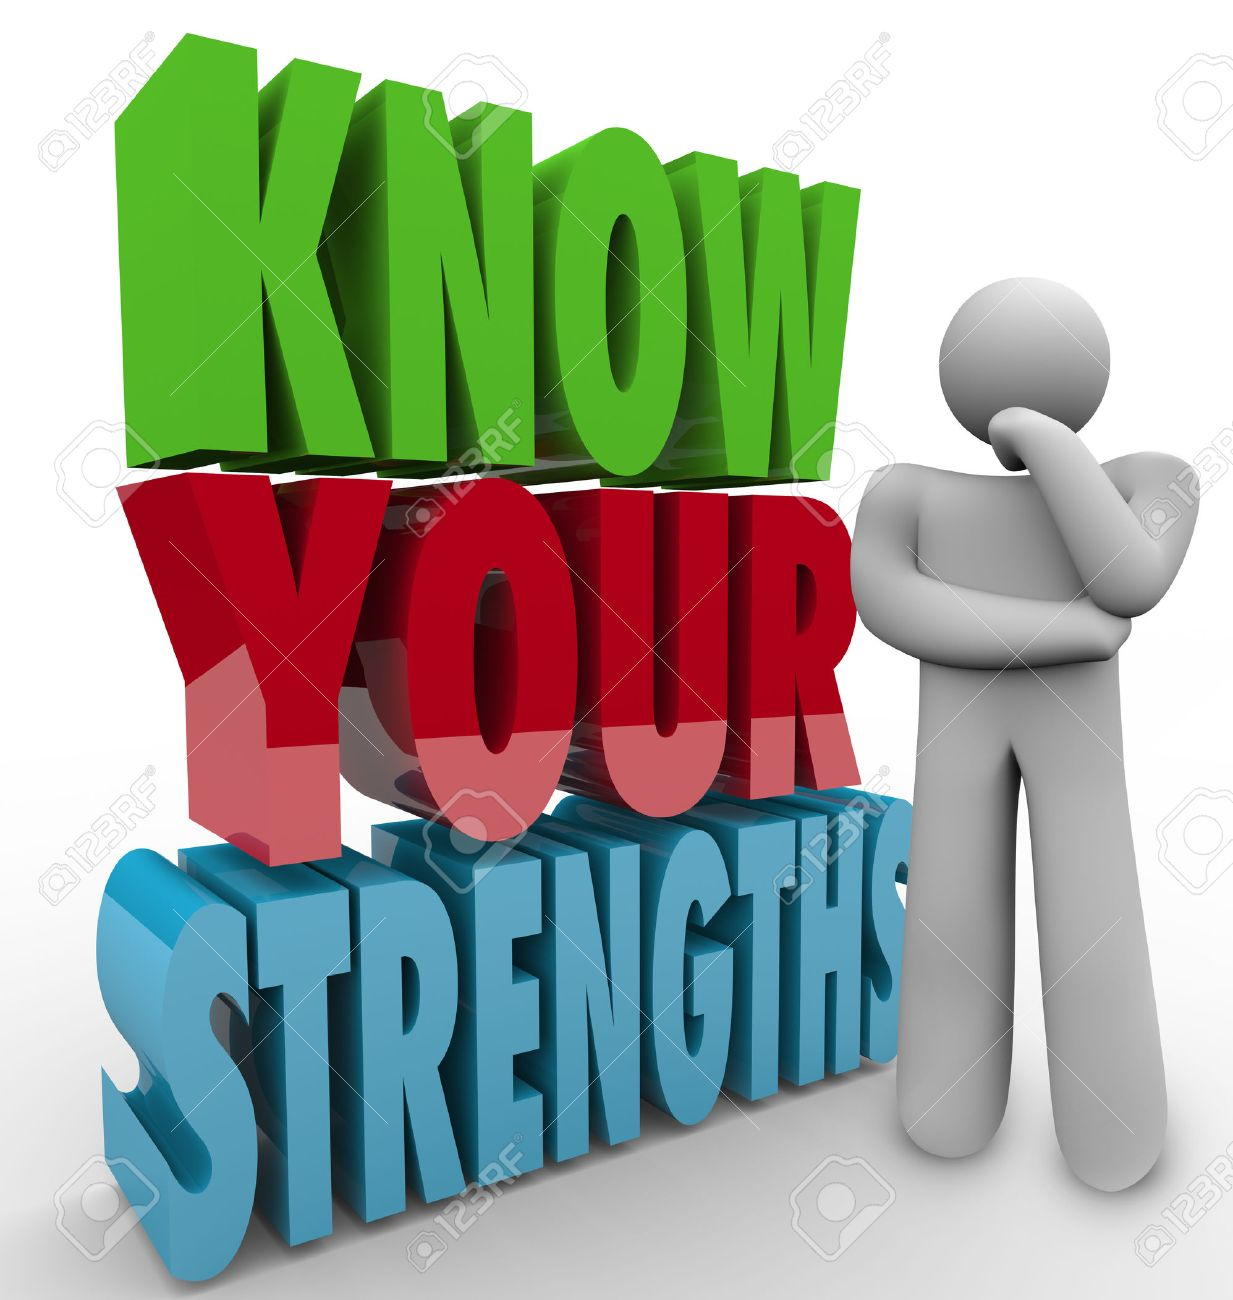 know your strengths words beside a thinking person wondering know your strengths words beside a thinking person wondering what his unique or special skills or